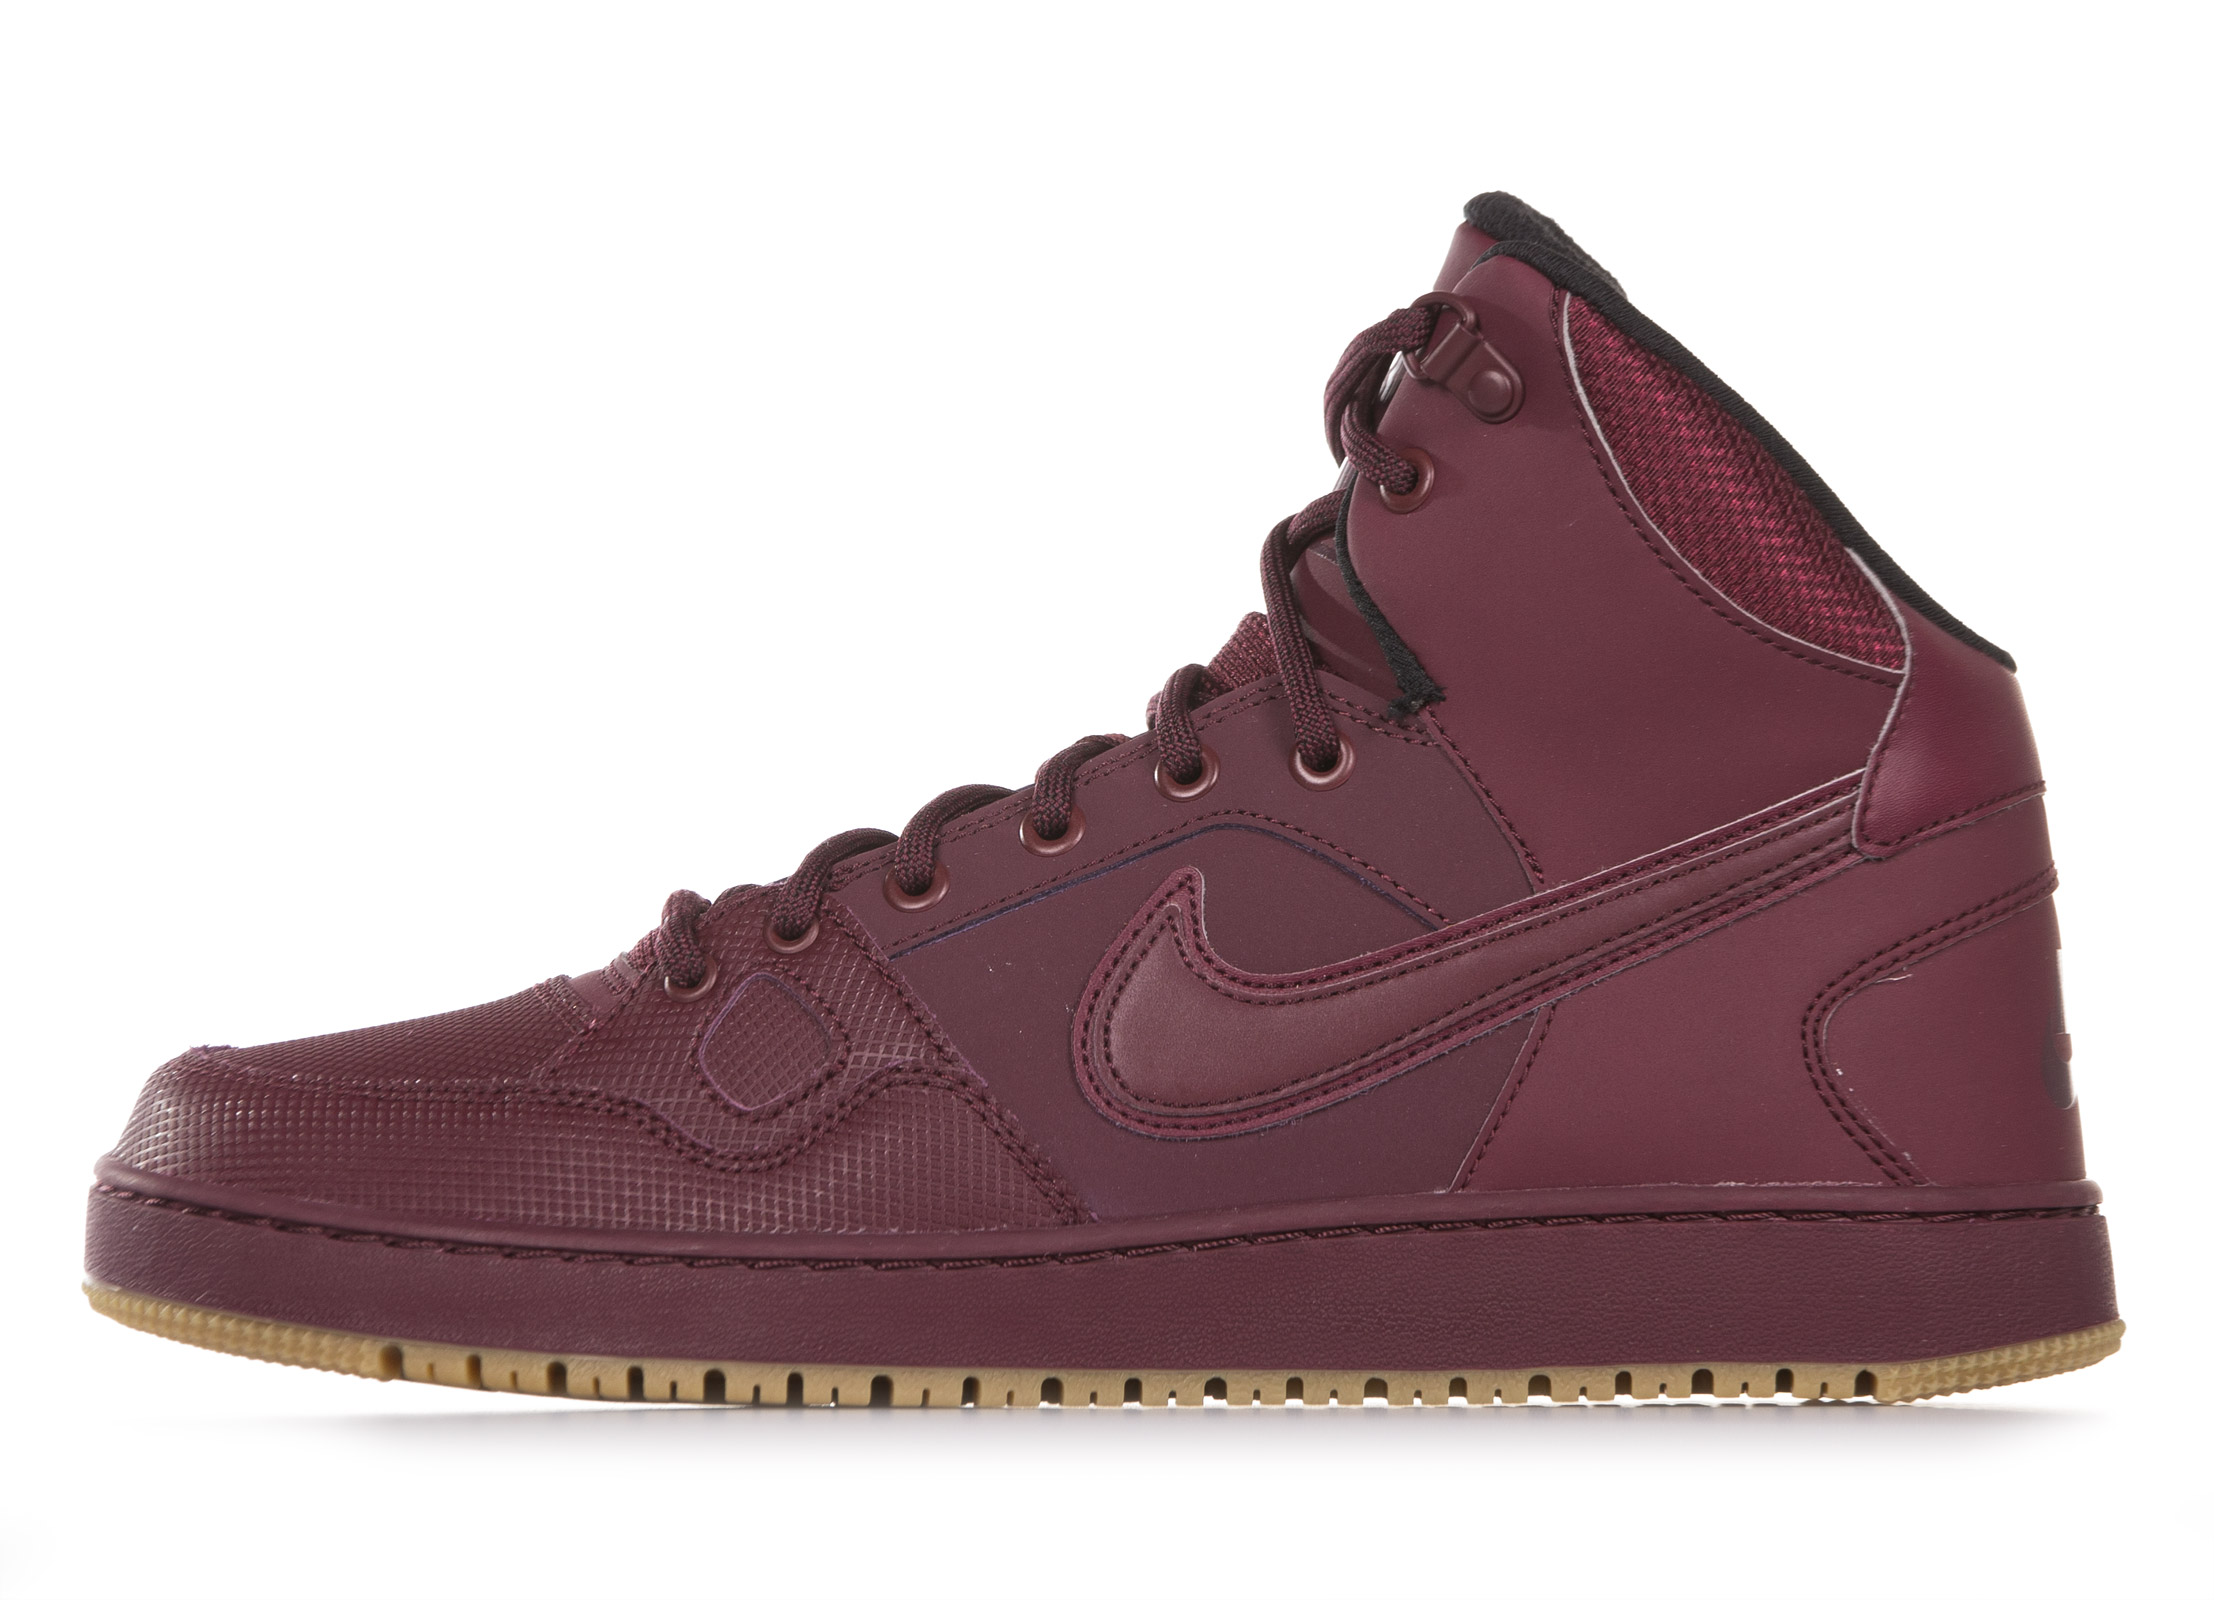 NIKE SON OF FORCE MID 807242 Μπορντό